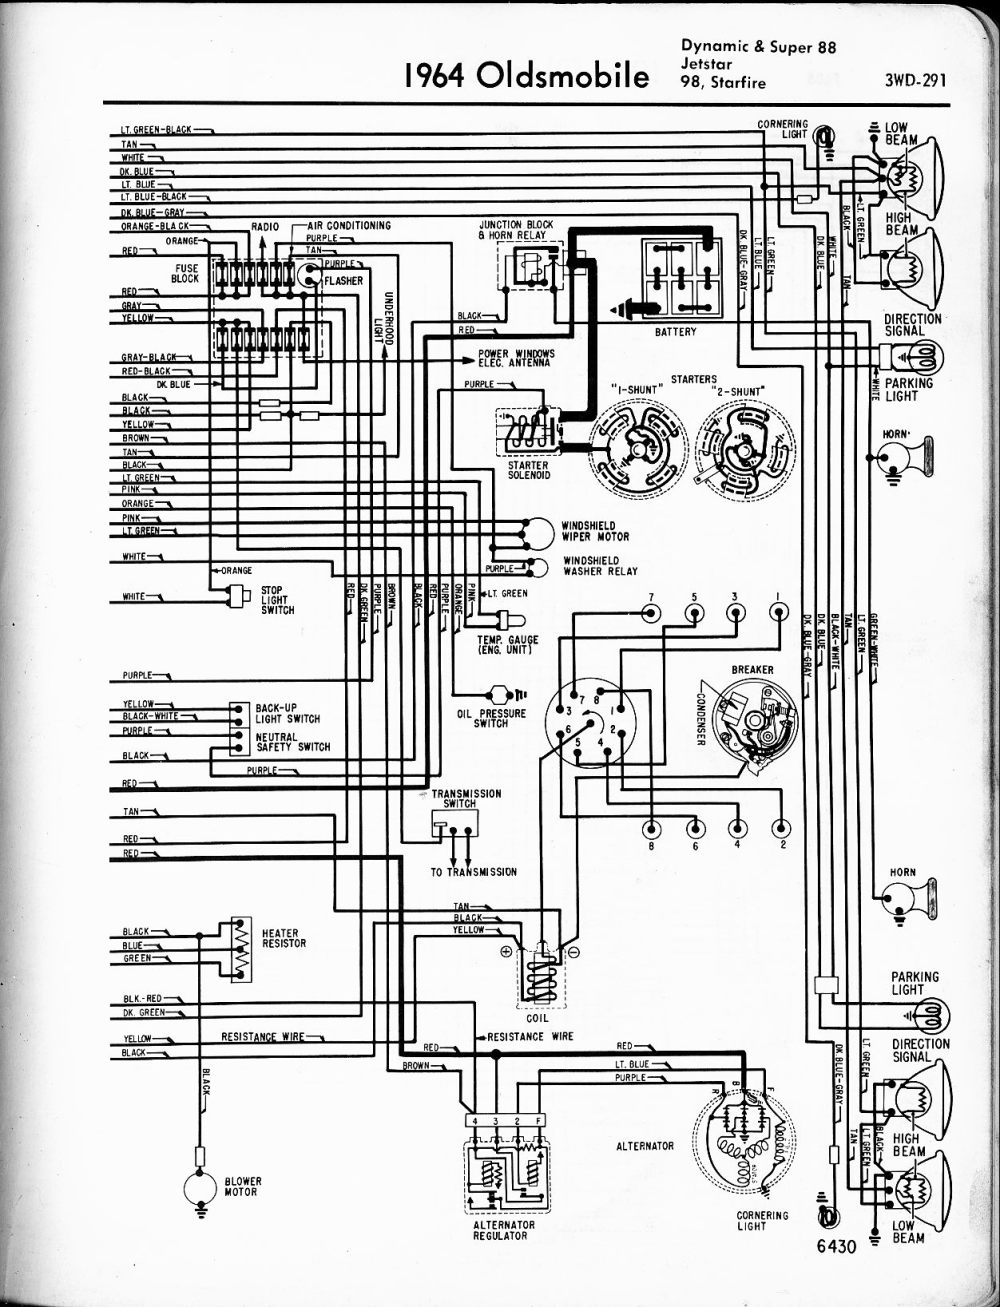 medium resolution of 1960 oldsmobile wiring diagram 12 11 growthstagetech co u202288 oldsmobile wiring diagram diagrams the old